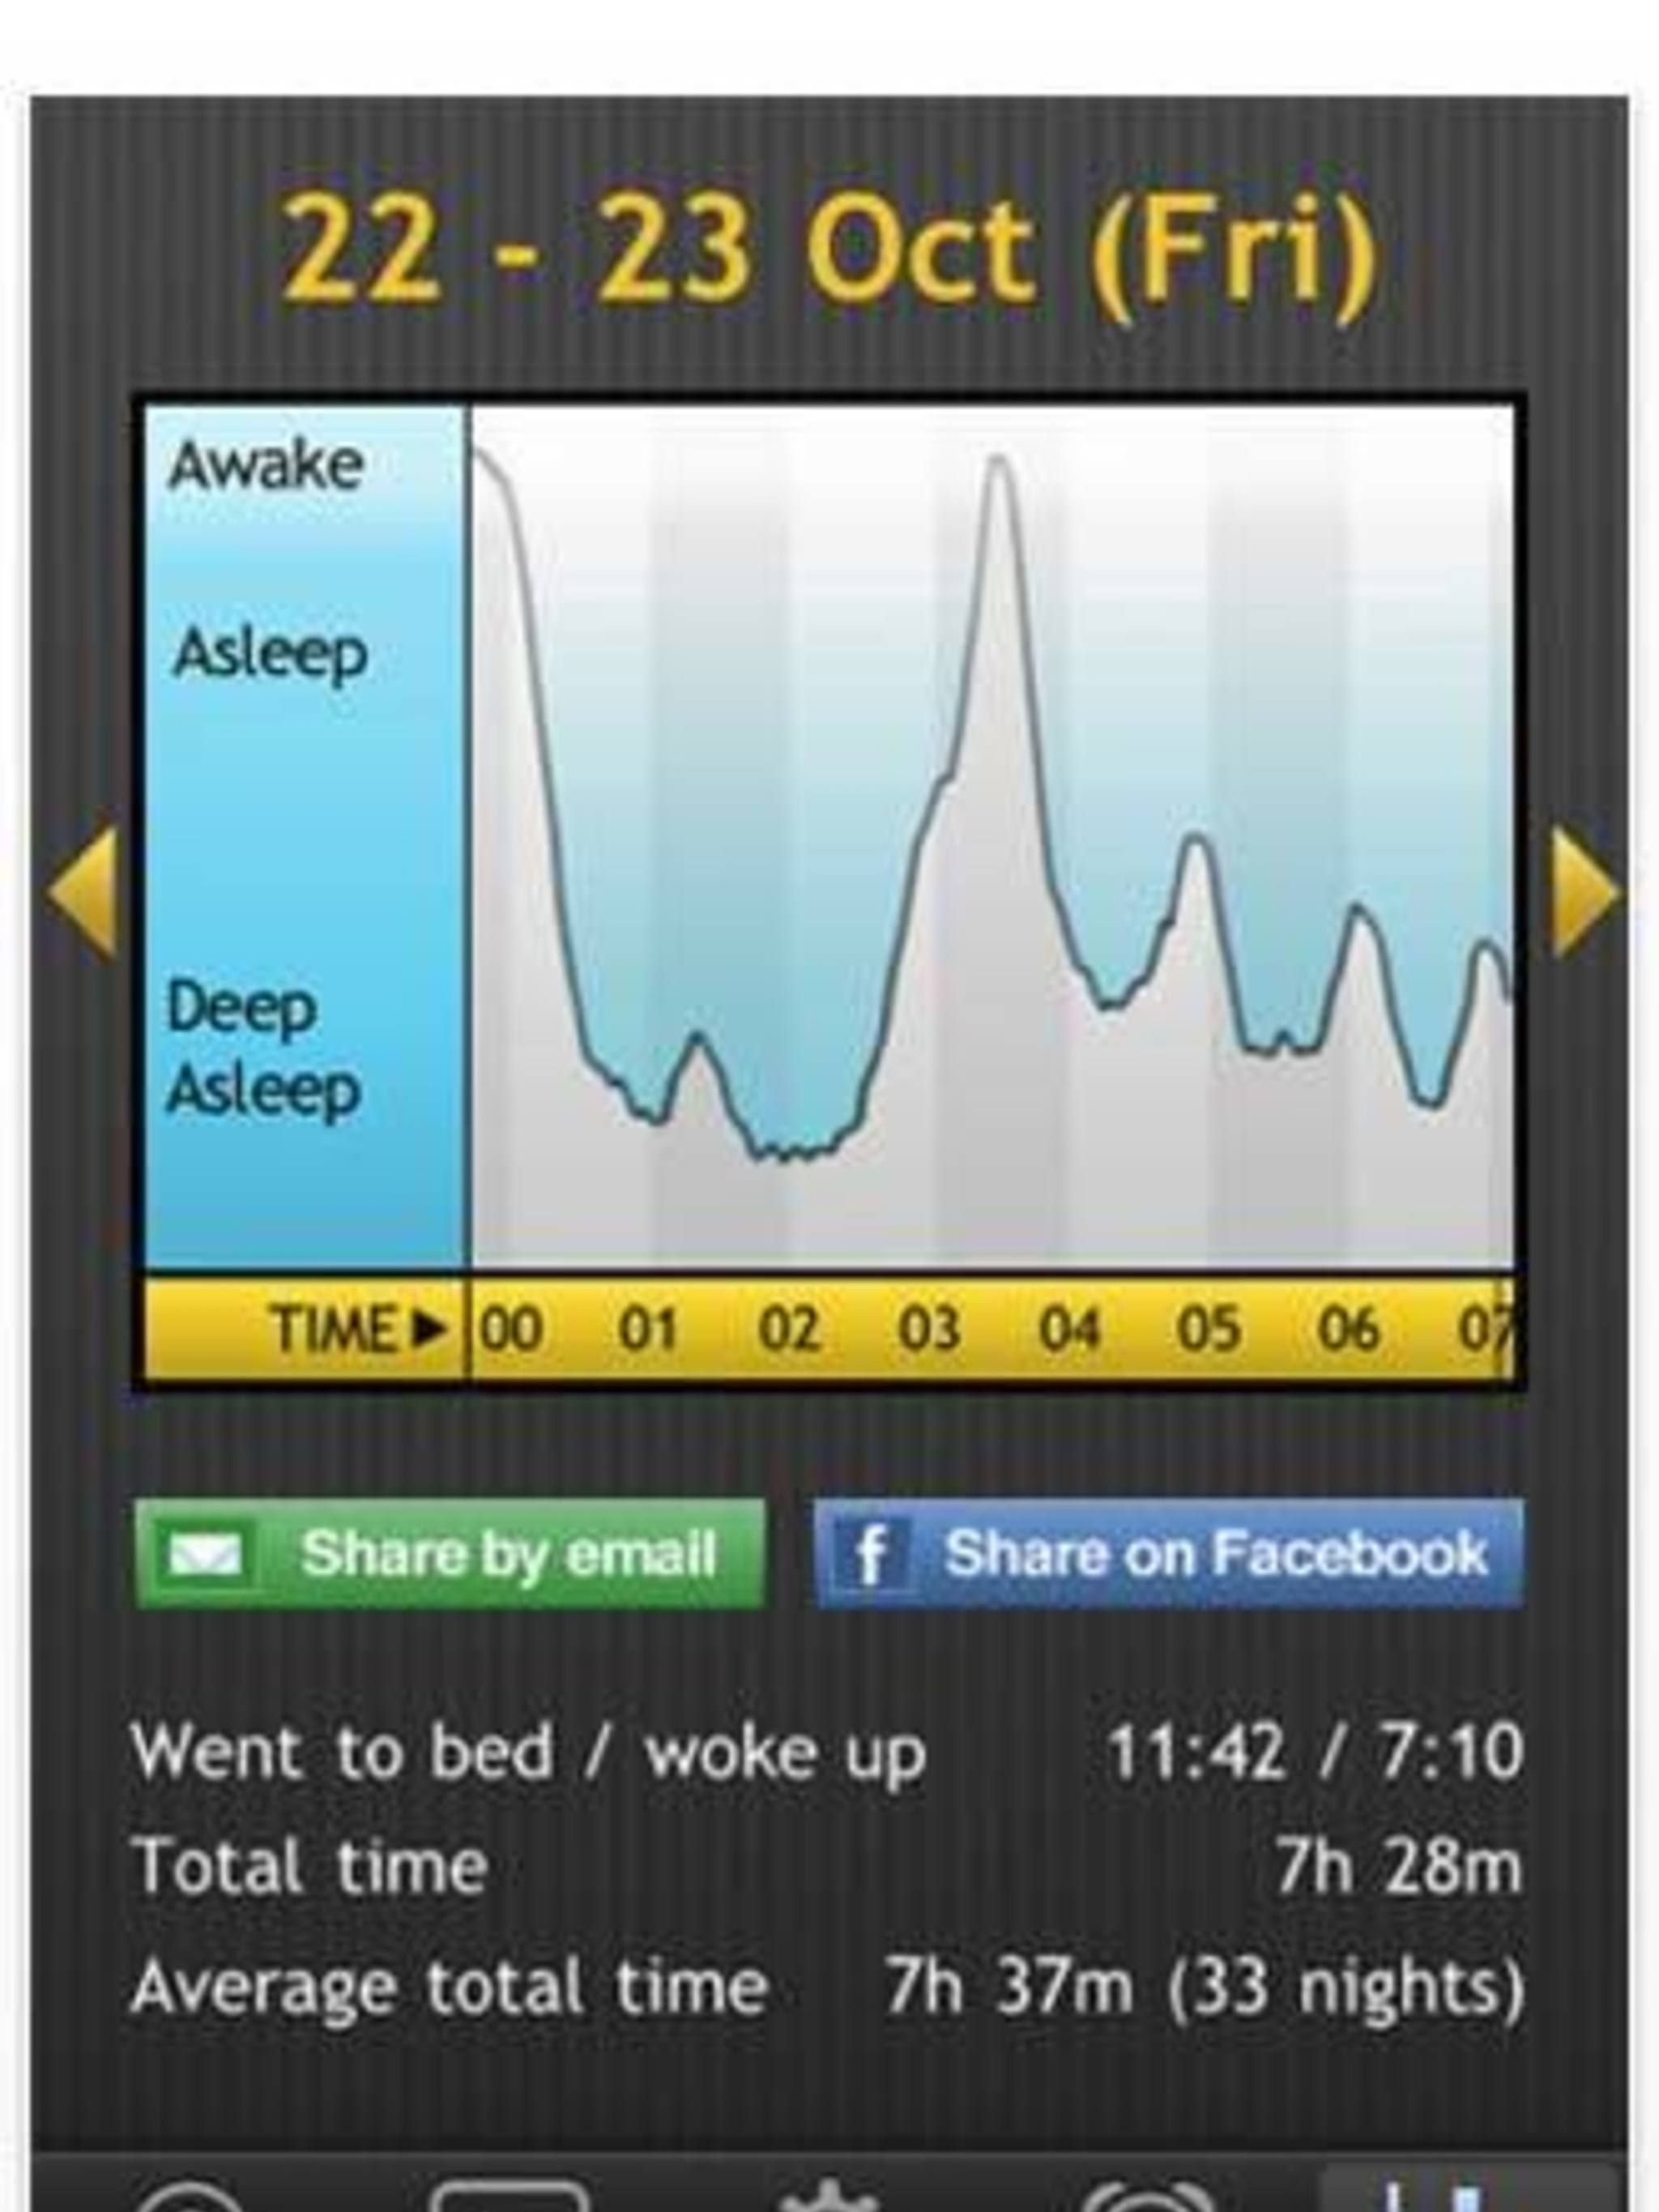 <p>With dark, wintry mornings on their way, getting up and out of bed can be even harder than usual. By analysing your sleeping patterns (it takes into account when you go to bed and how long you sleep for, on average), this app aims to wake you up during